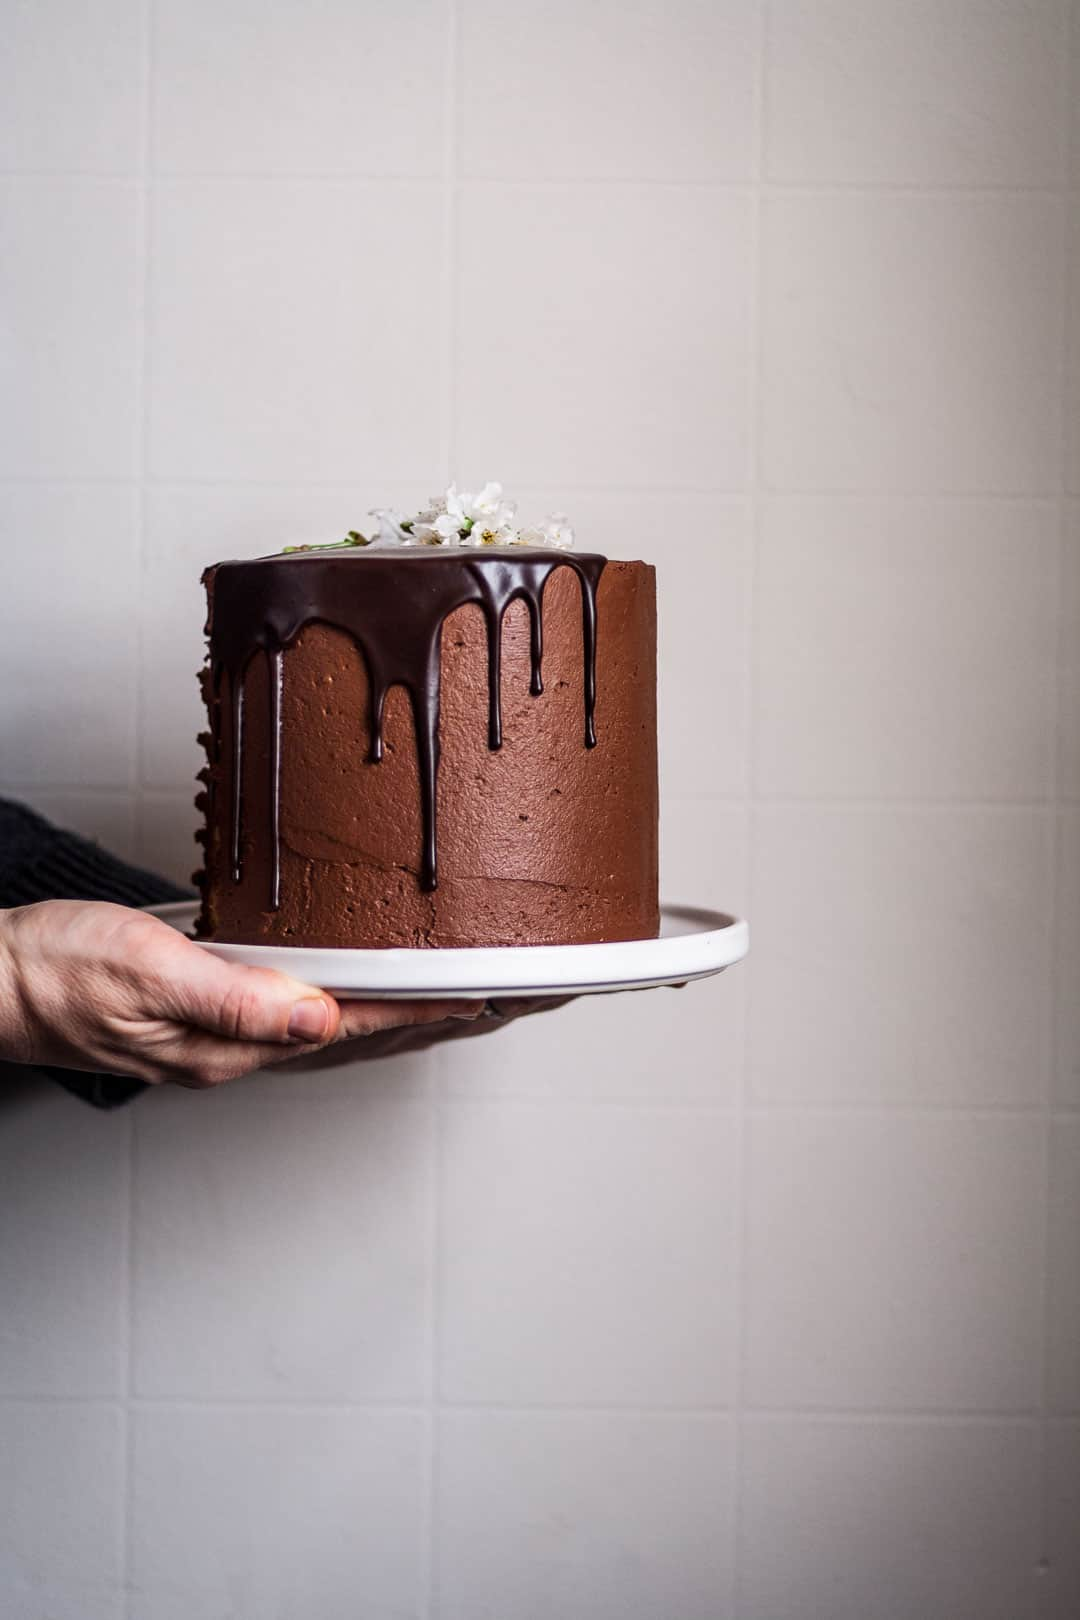 two hands holding marzipan cake with chocolate buttercream and chocolate ganache drip on a white platter against a white wall